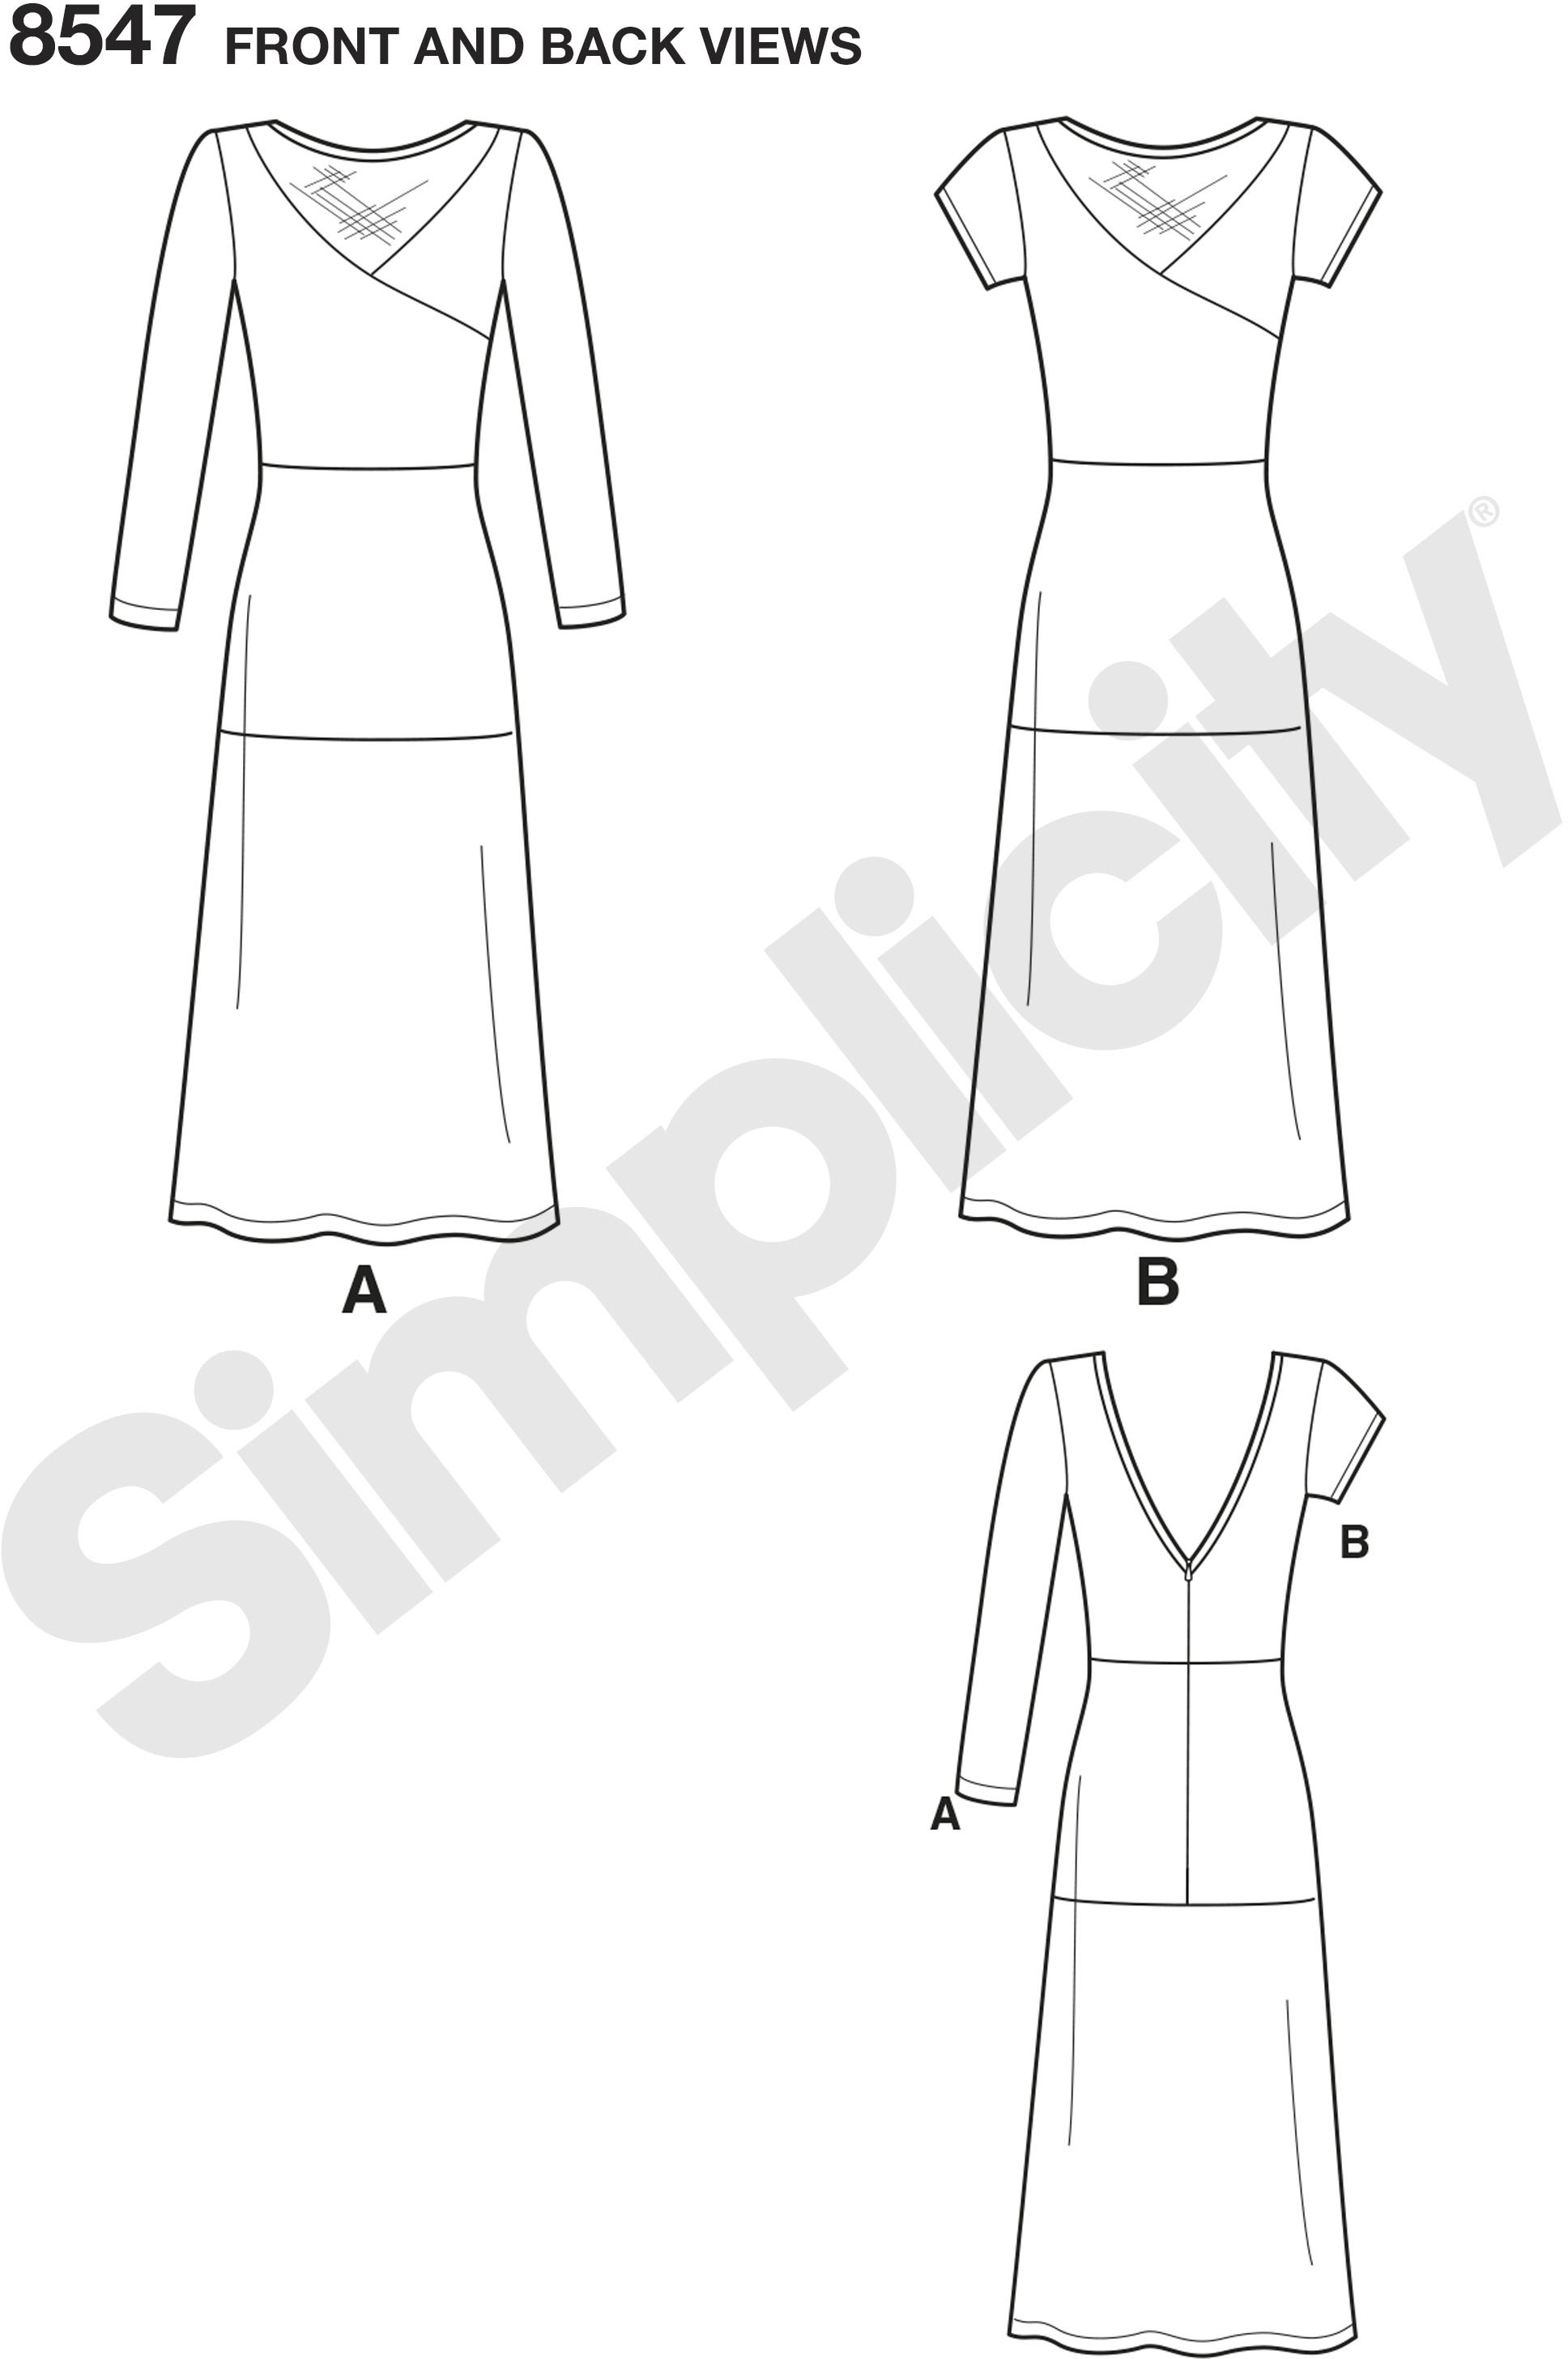 This Misses and Miss Petite knit dress pattern from Mimi G Style and Simplicity has short or long sleeves, low V-shaped back neckline, and features sheer front inserts and fabric variations.